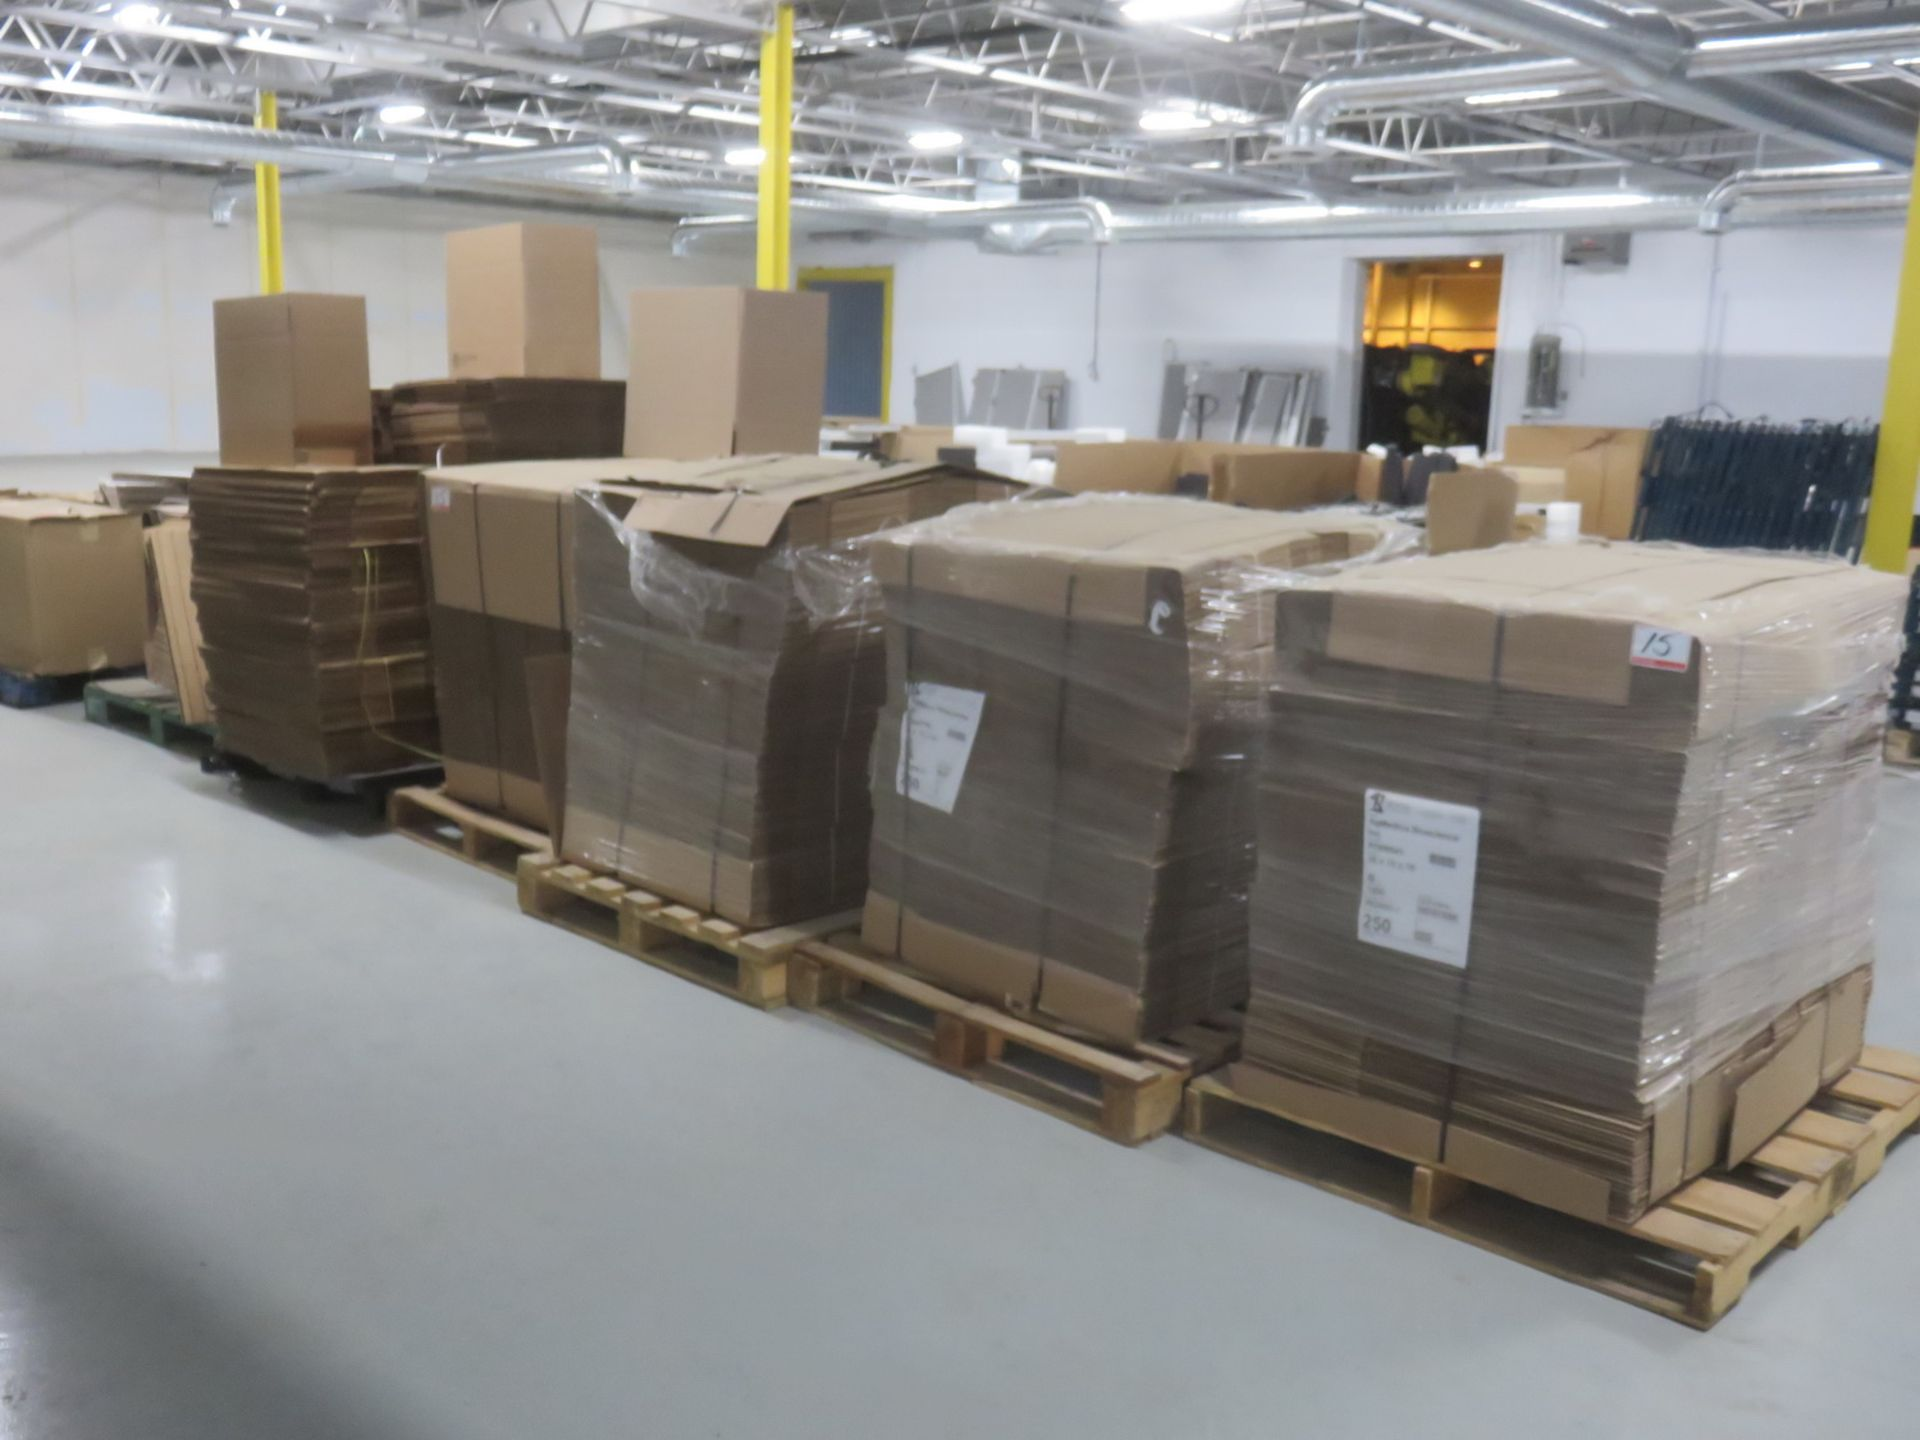 """Lot 15 - LOT - ASSORTED NEW CARDBOARD BOXES - ROYAL 20 X 10 X 10"""" APPROX., & GROWN MILL 10 X 6 X 4.5"""" APPROX,"""